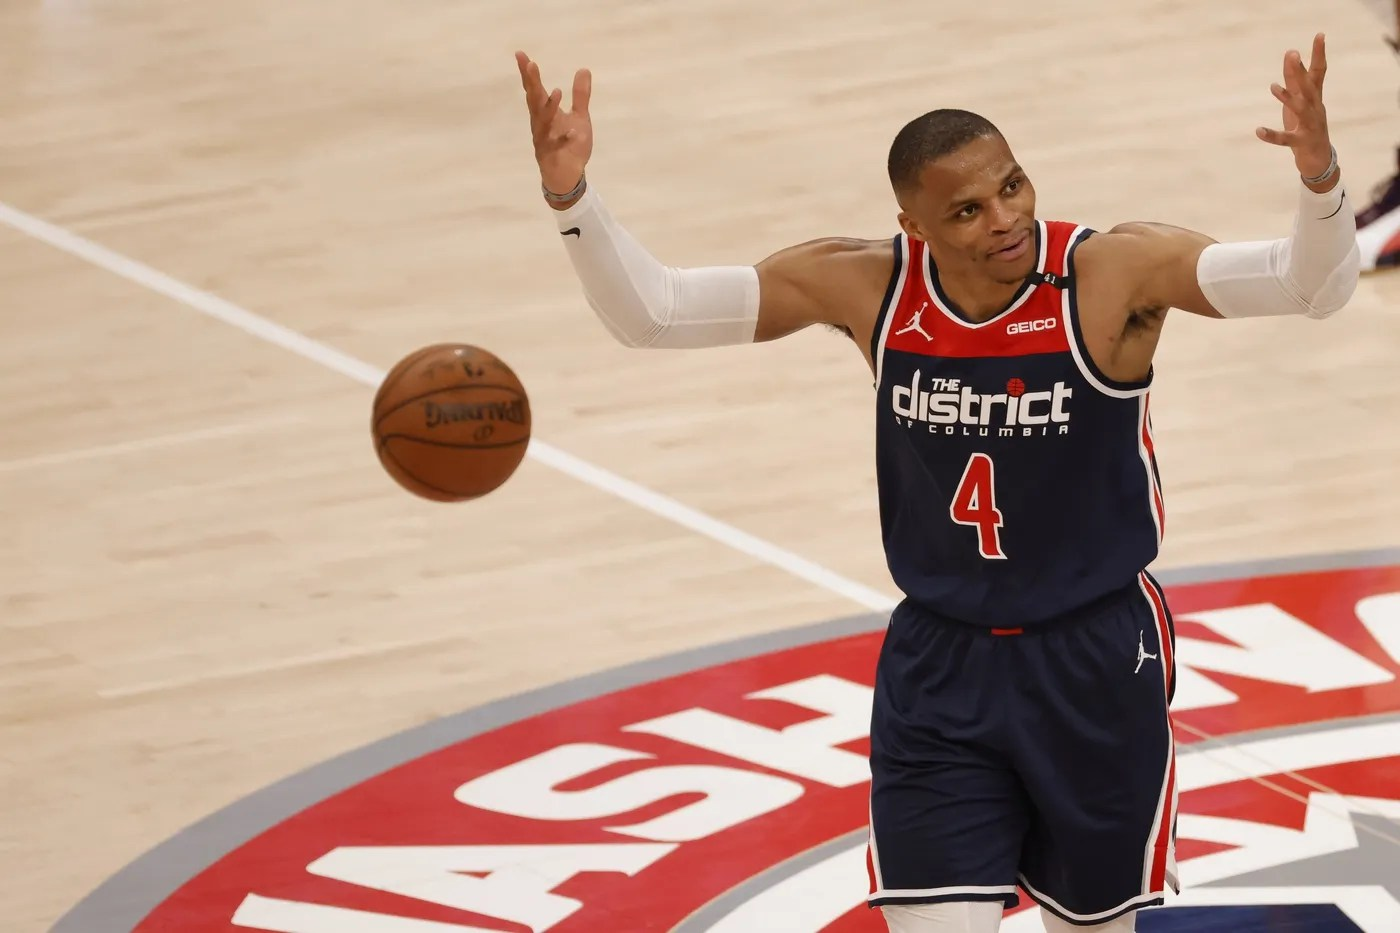 May 3, 2021; Washington, District of Columbia, USA; Washington Wizards guard Russell Westbrook (4) celebrates on the court against the Indiana Pacers in the third quarter at Capital One Arena. Mandatory Credit: Geoff Burke-USA TODAY Sports